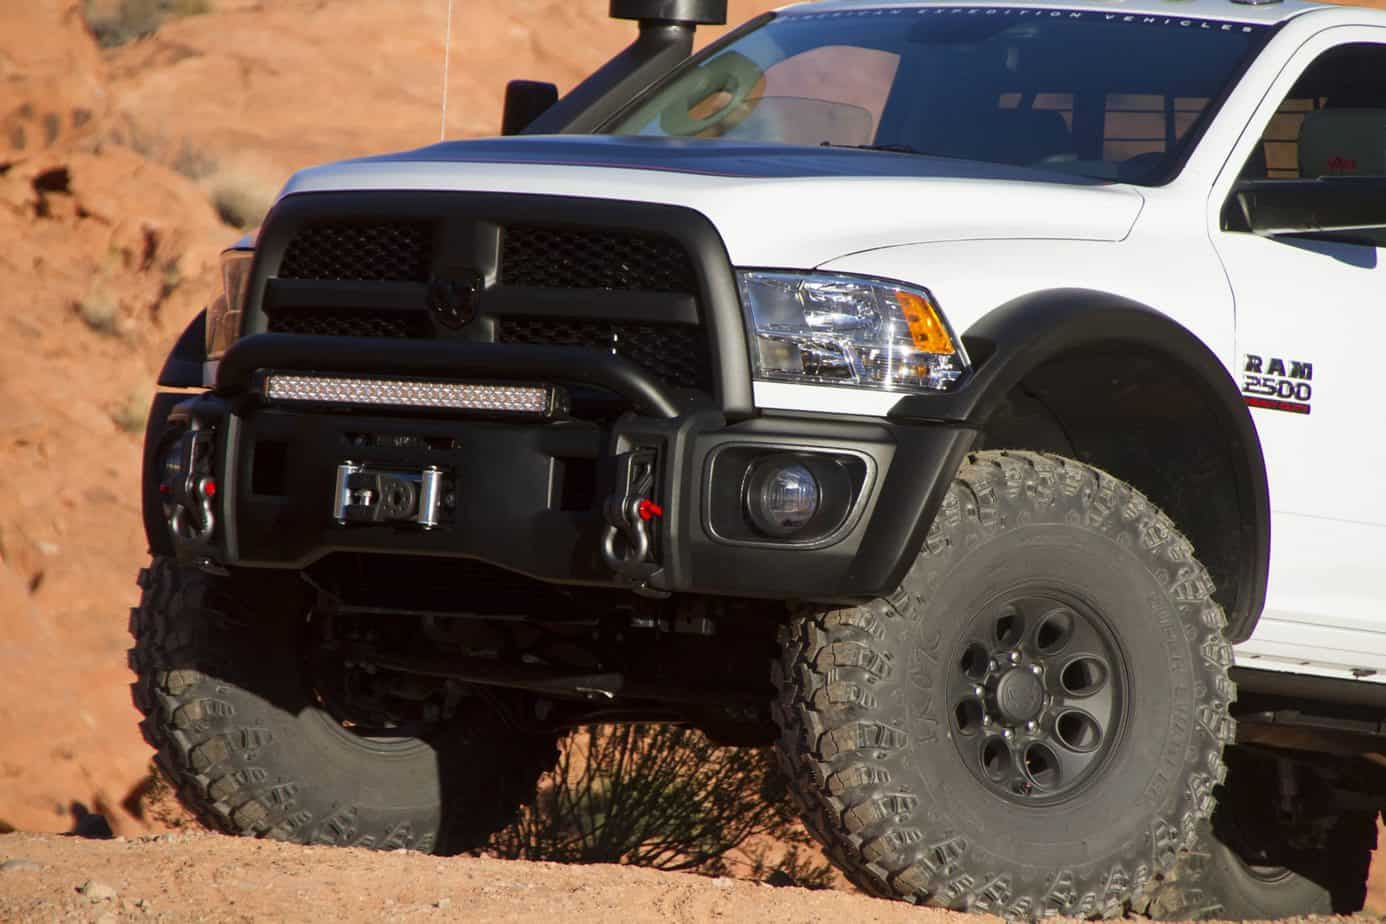 Dodge Ram 2500 Seat Covers >> Featured Vehicle: The AEV Ram 2500 - Expedition Portal